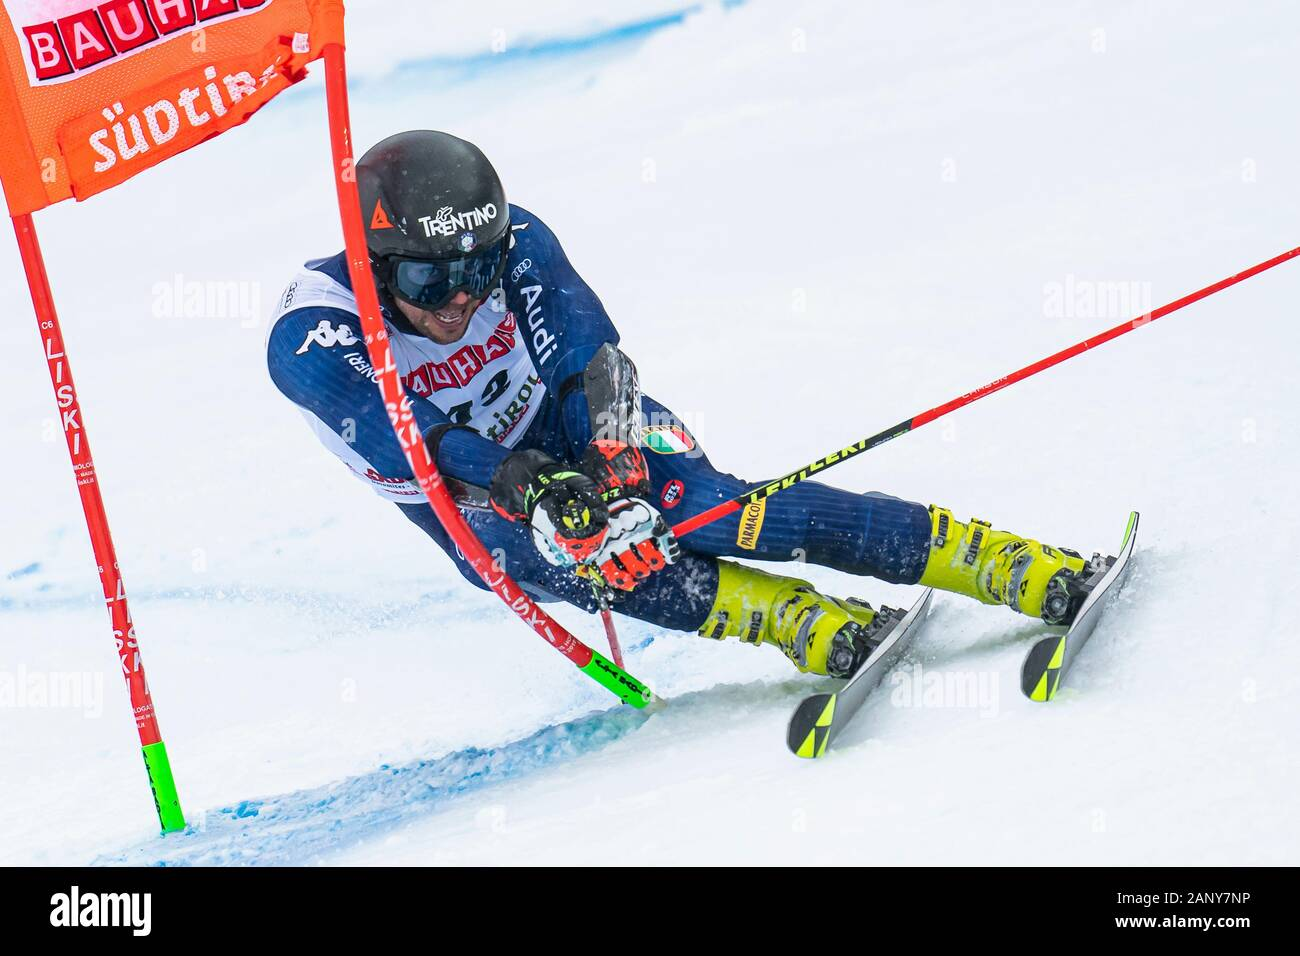 Alta Badia, Italy 22 December 2019.  BALLERIN Andrea (Ita) competing in the Audi Fis Alpine Skiing World Cup Men's Giant Slalom on the Gran Risa Cours Stock Photo